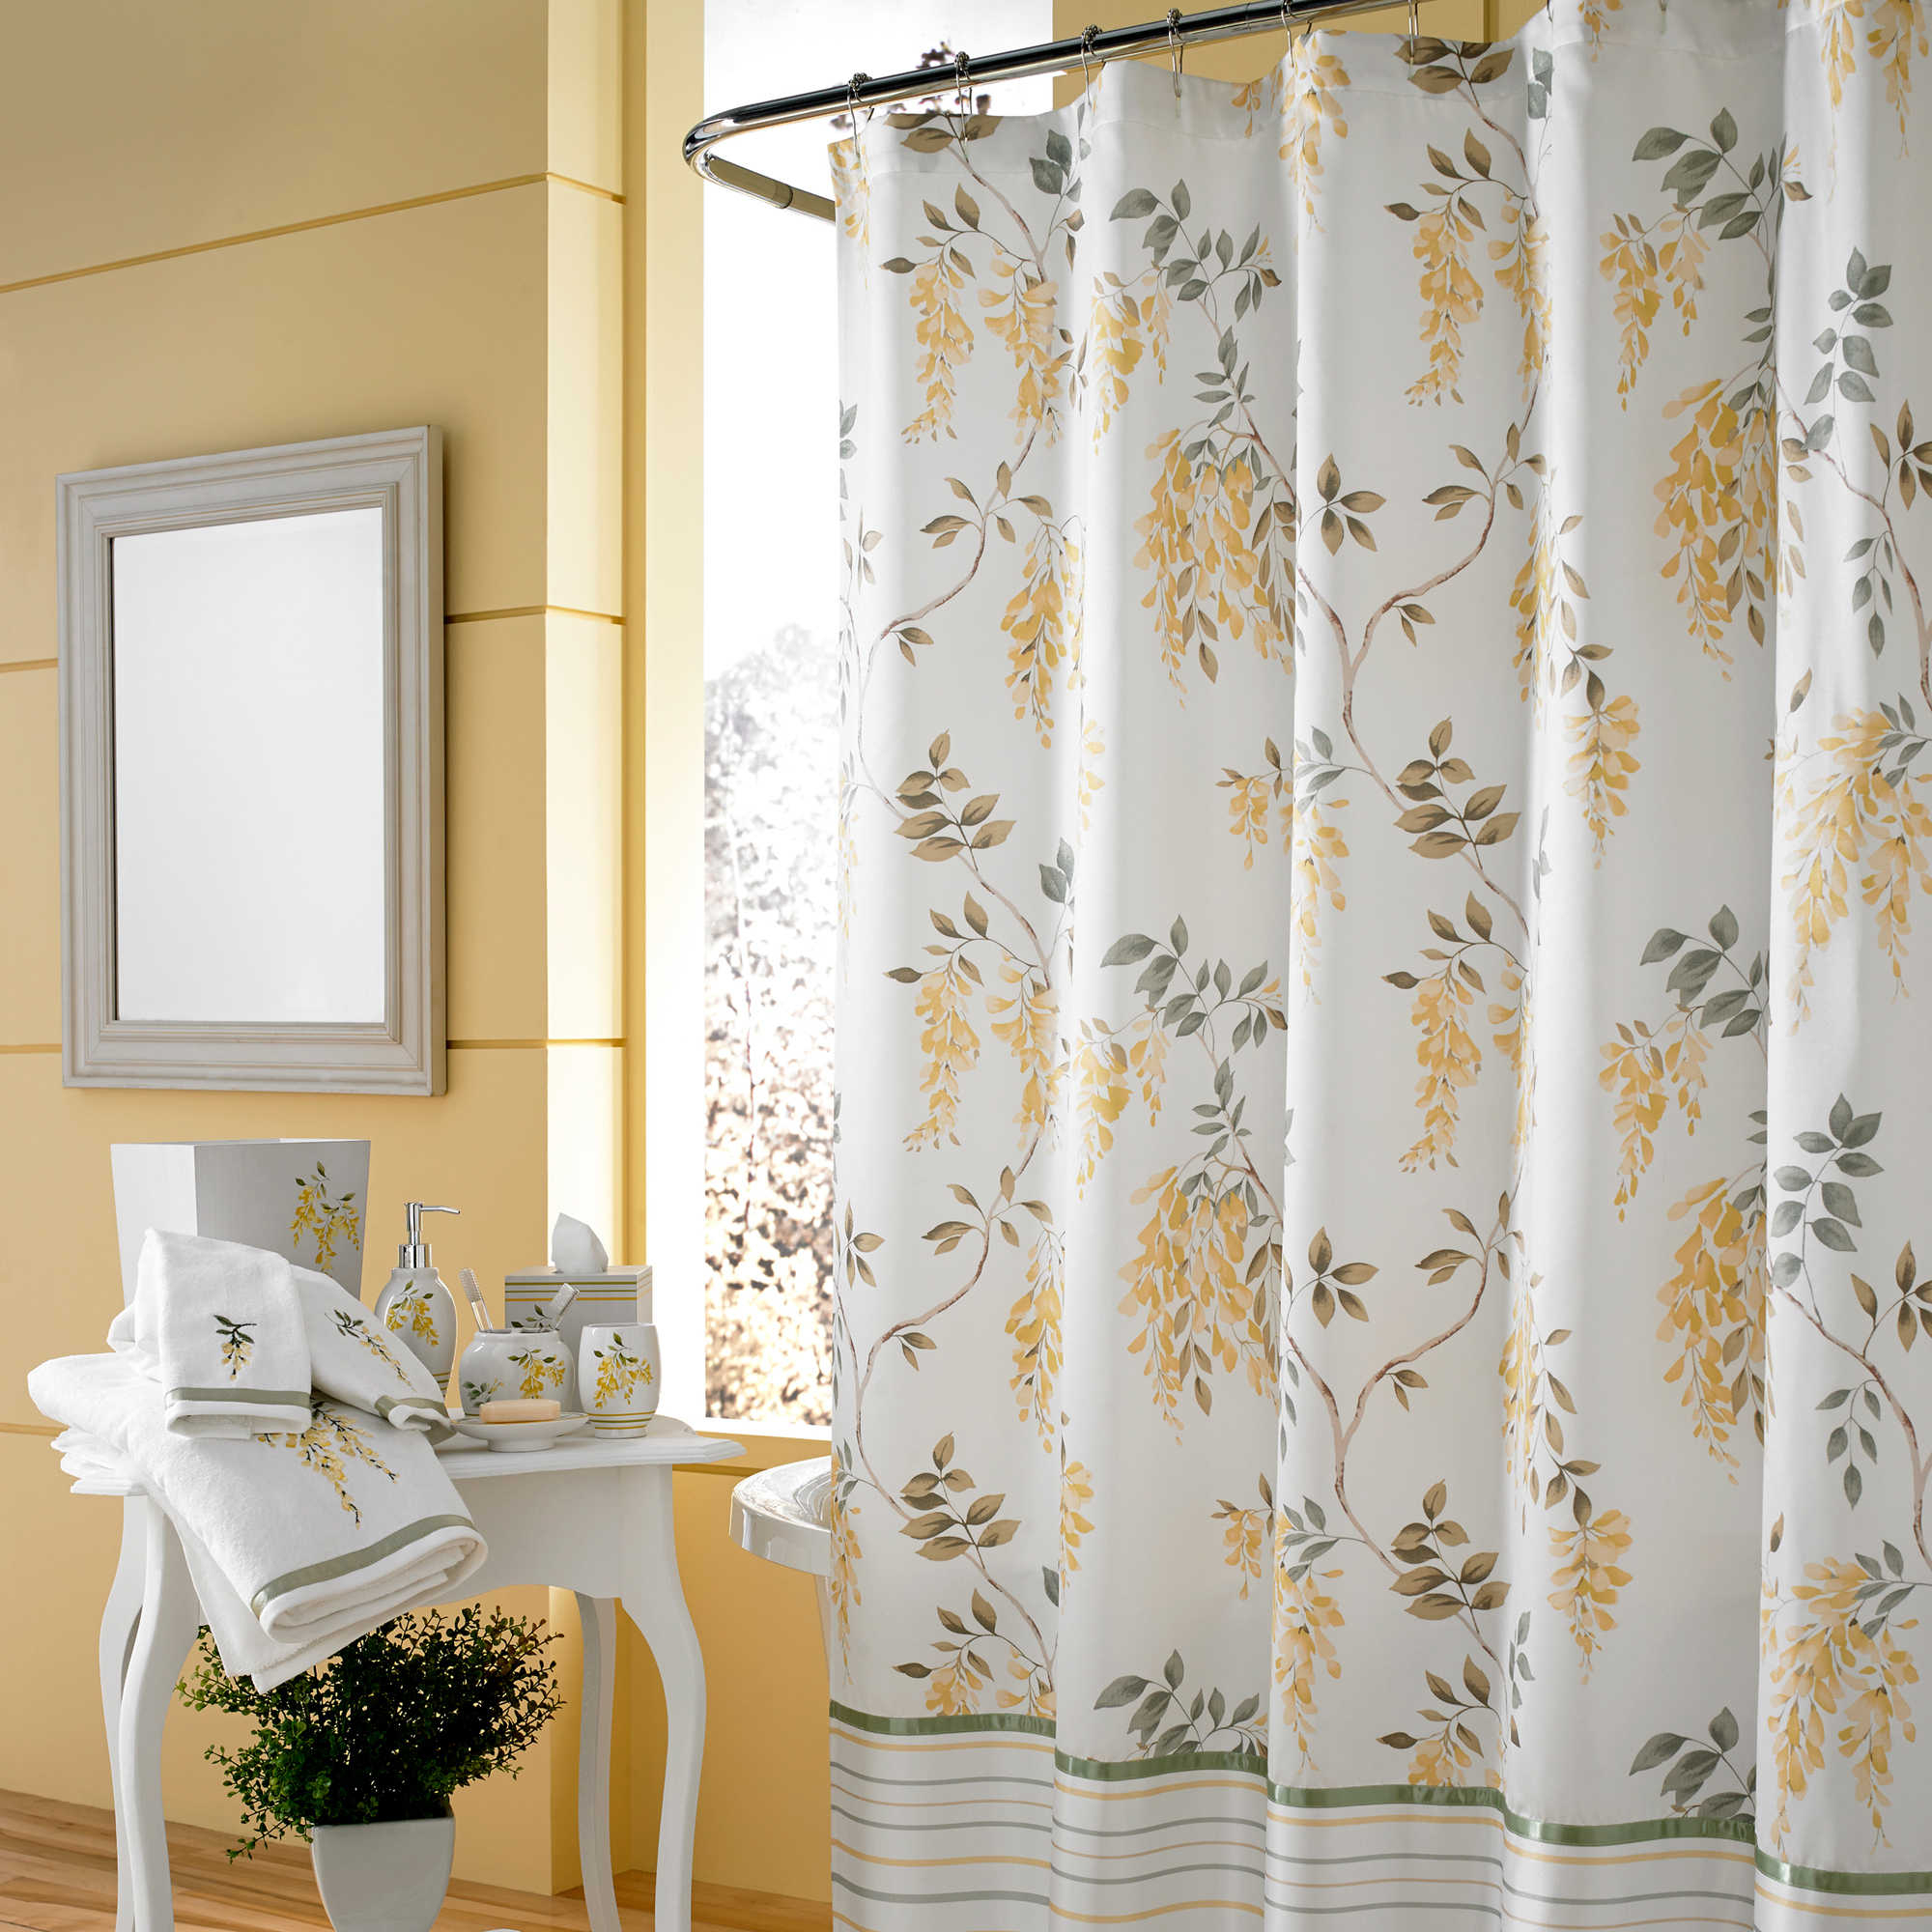 Brilliant Design Yellow And White Shower Curtain Ingenious Idea Within Proportions 2000 X